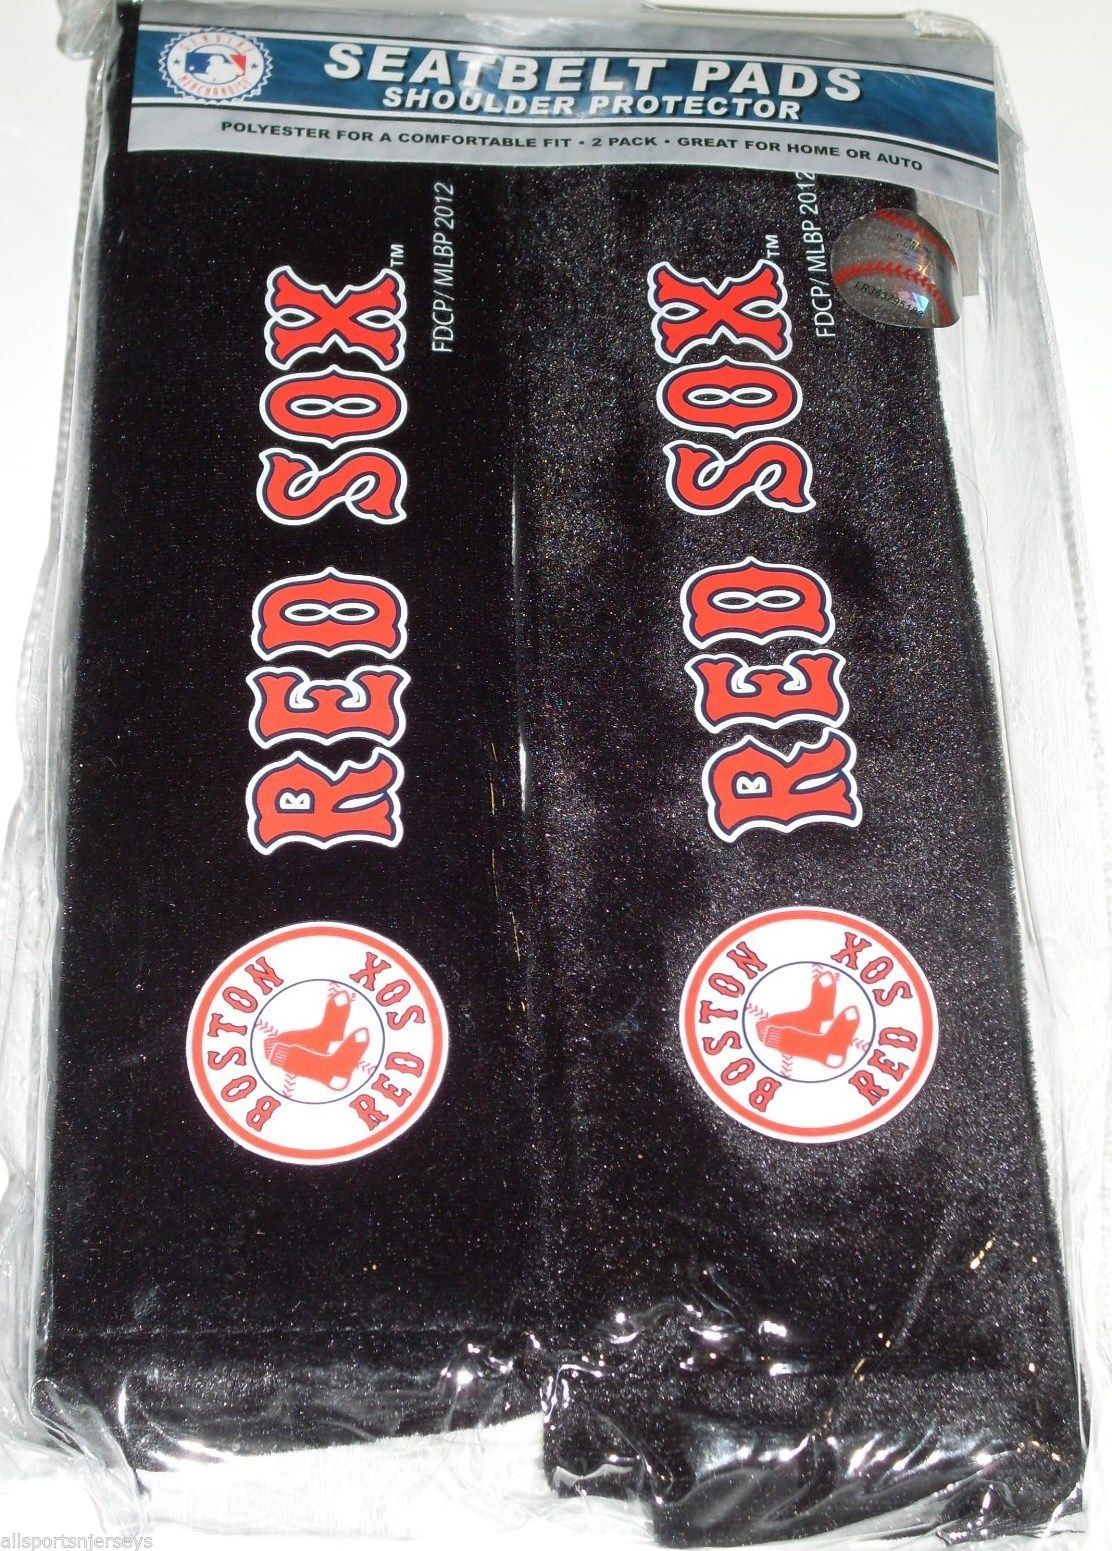 70ce22b9c74a Nip Mlb 2 Pack Seat Belt Pads - Boston Red and 13 similar items. S l1600